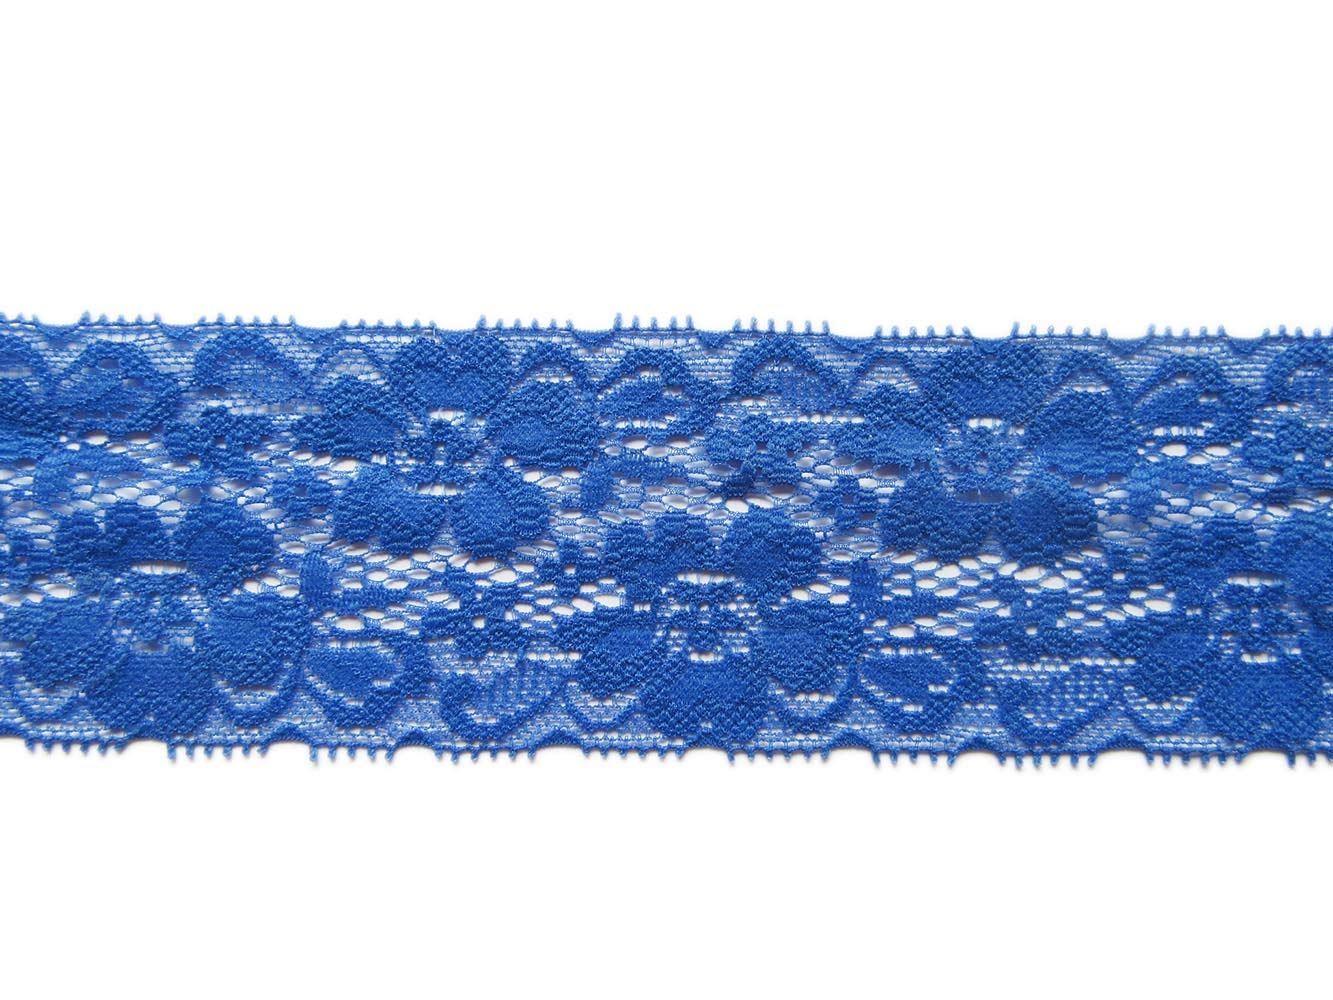 YYCRAFT Elastic Lace Trim Ribbon for Sewing and DIY Craft Projects 15yards,Turquoise